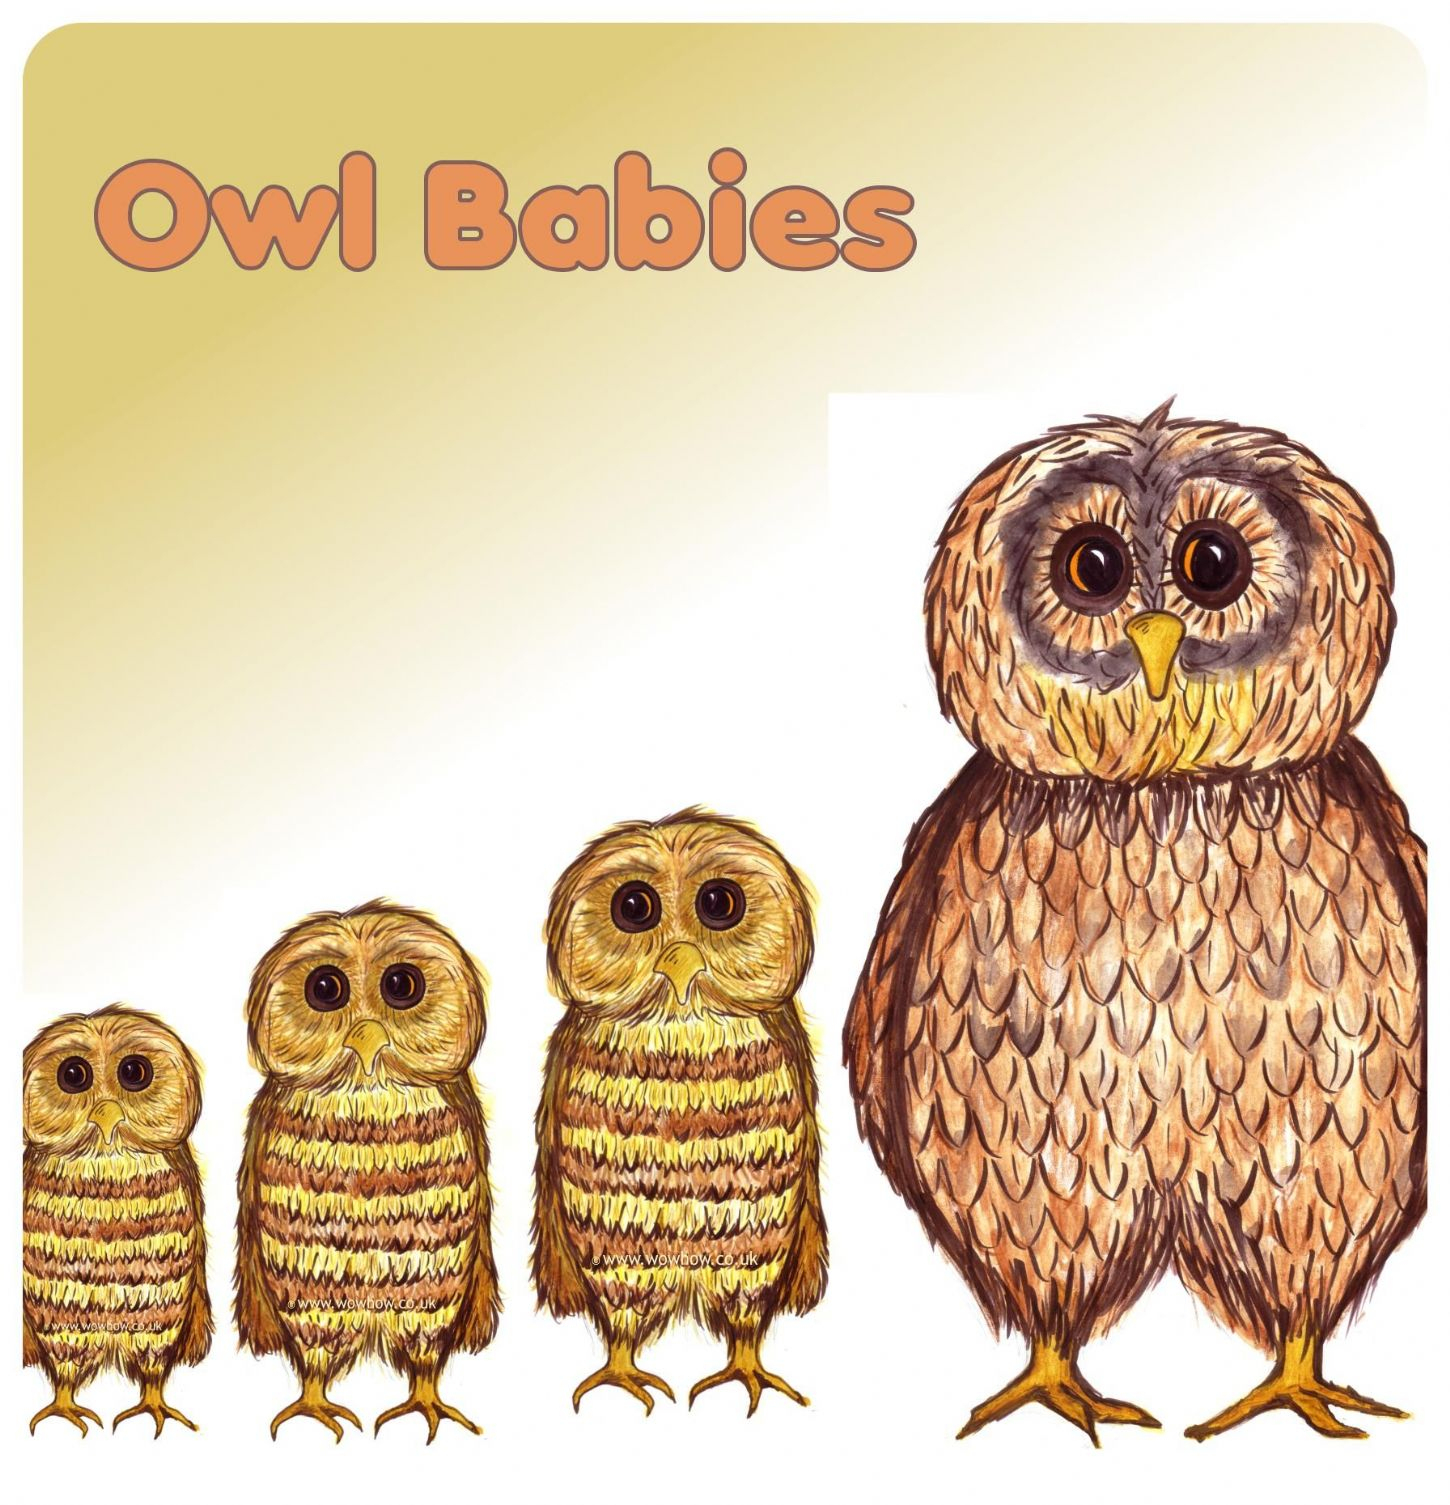 Owl Babies Printable Worksheets | Cialiswow | Owl Babies Printable Worksheets